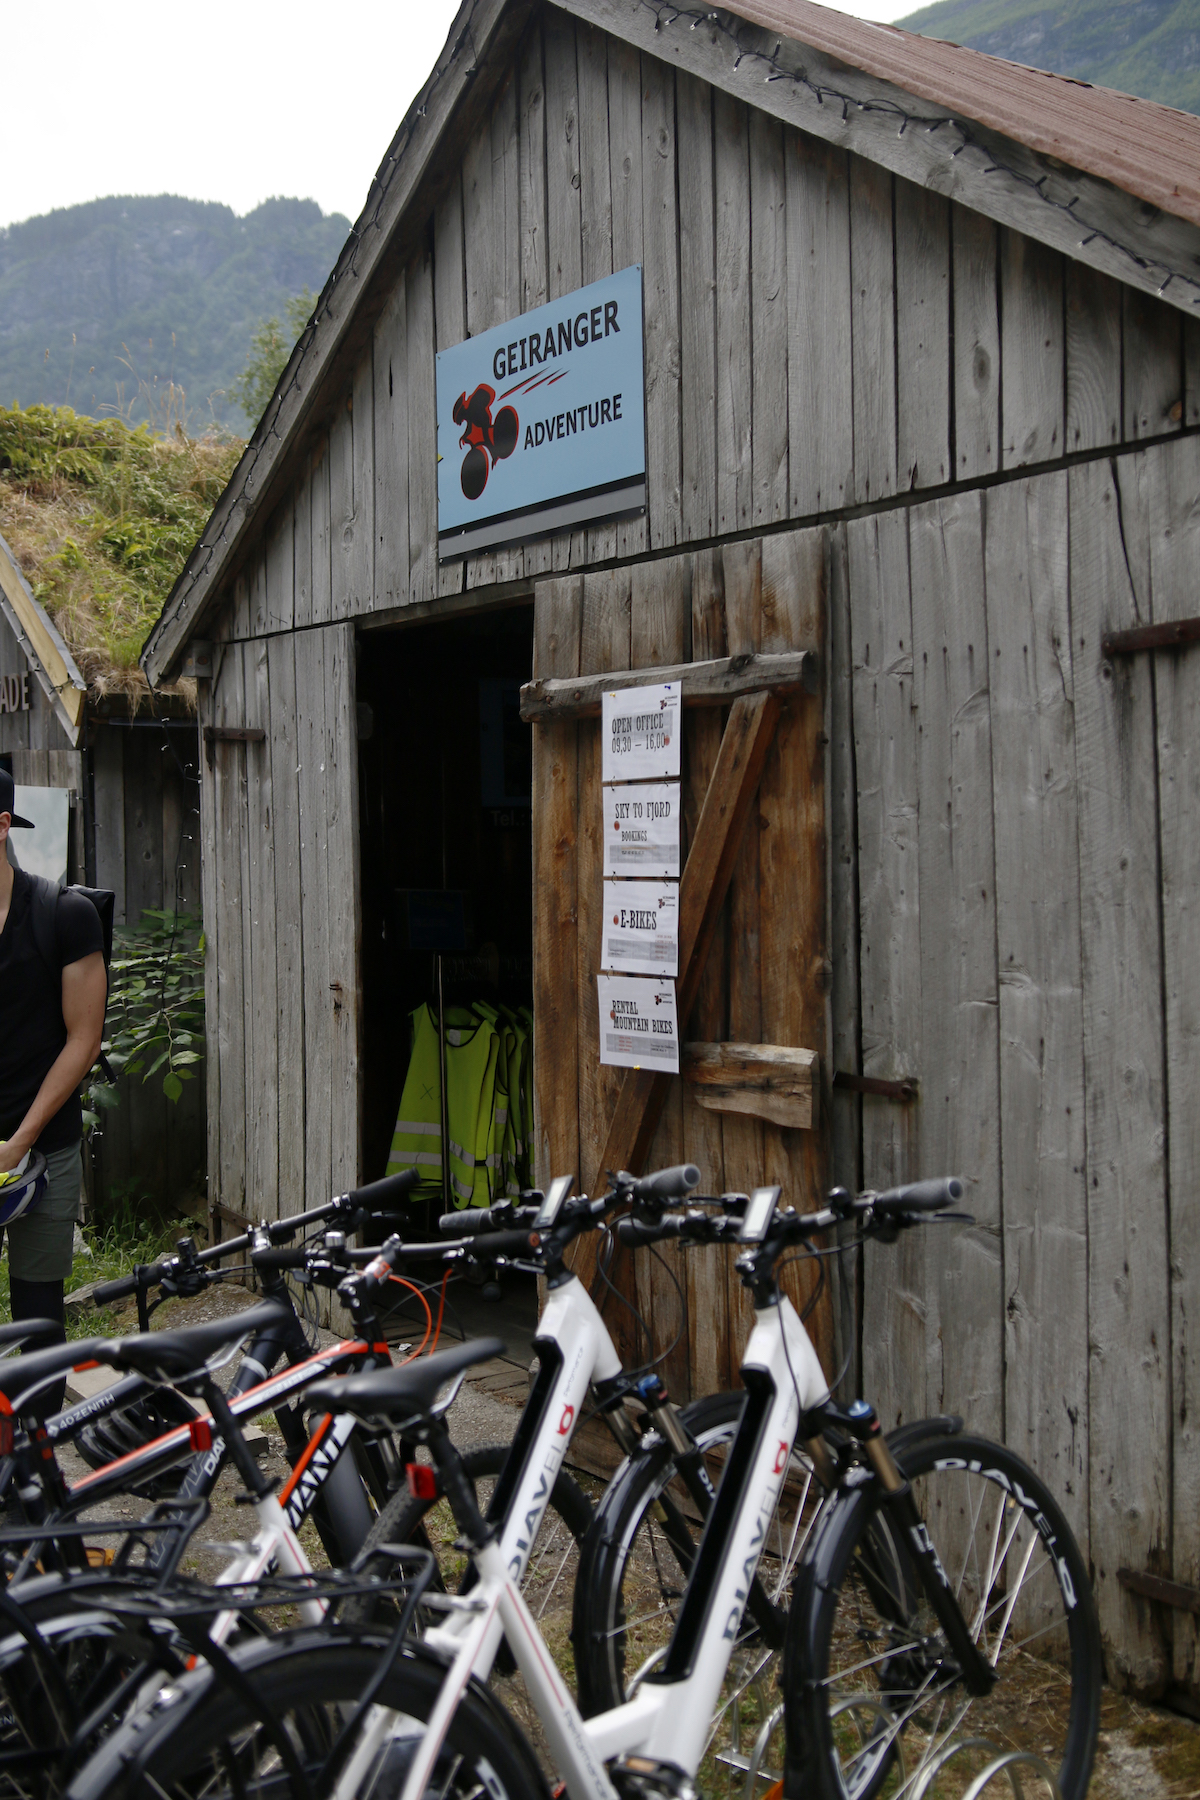 _MG_1321 Geiranger_Adventure_Biking